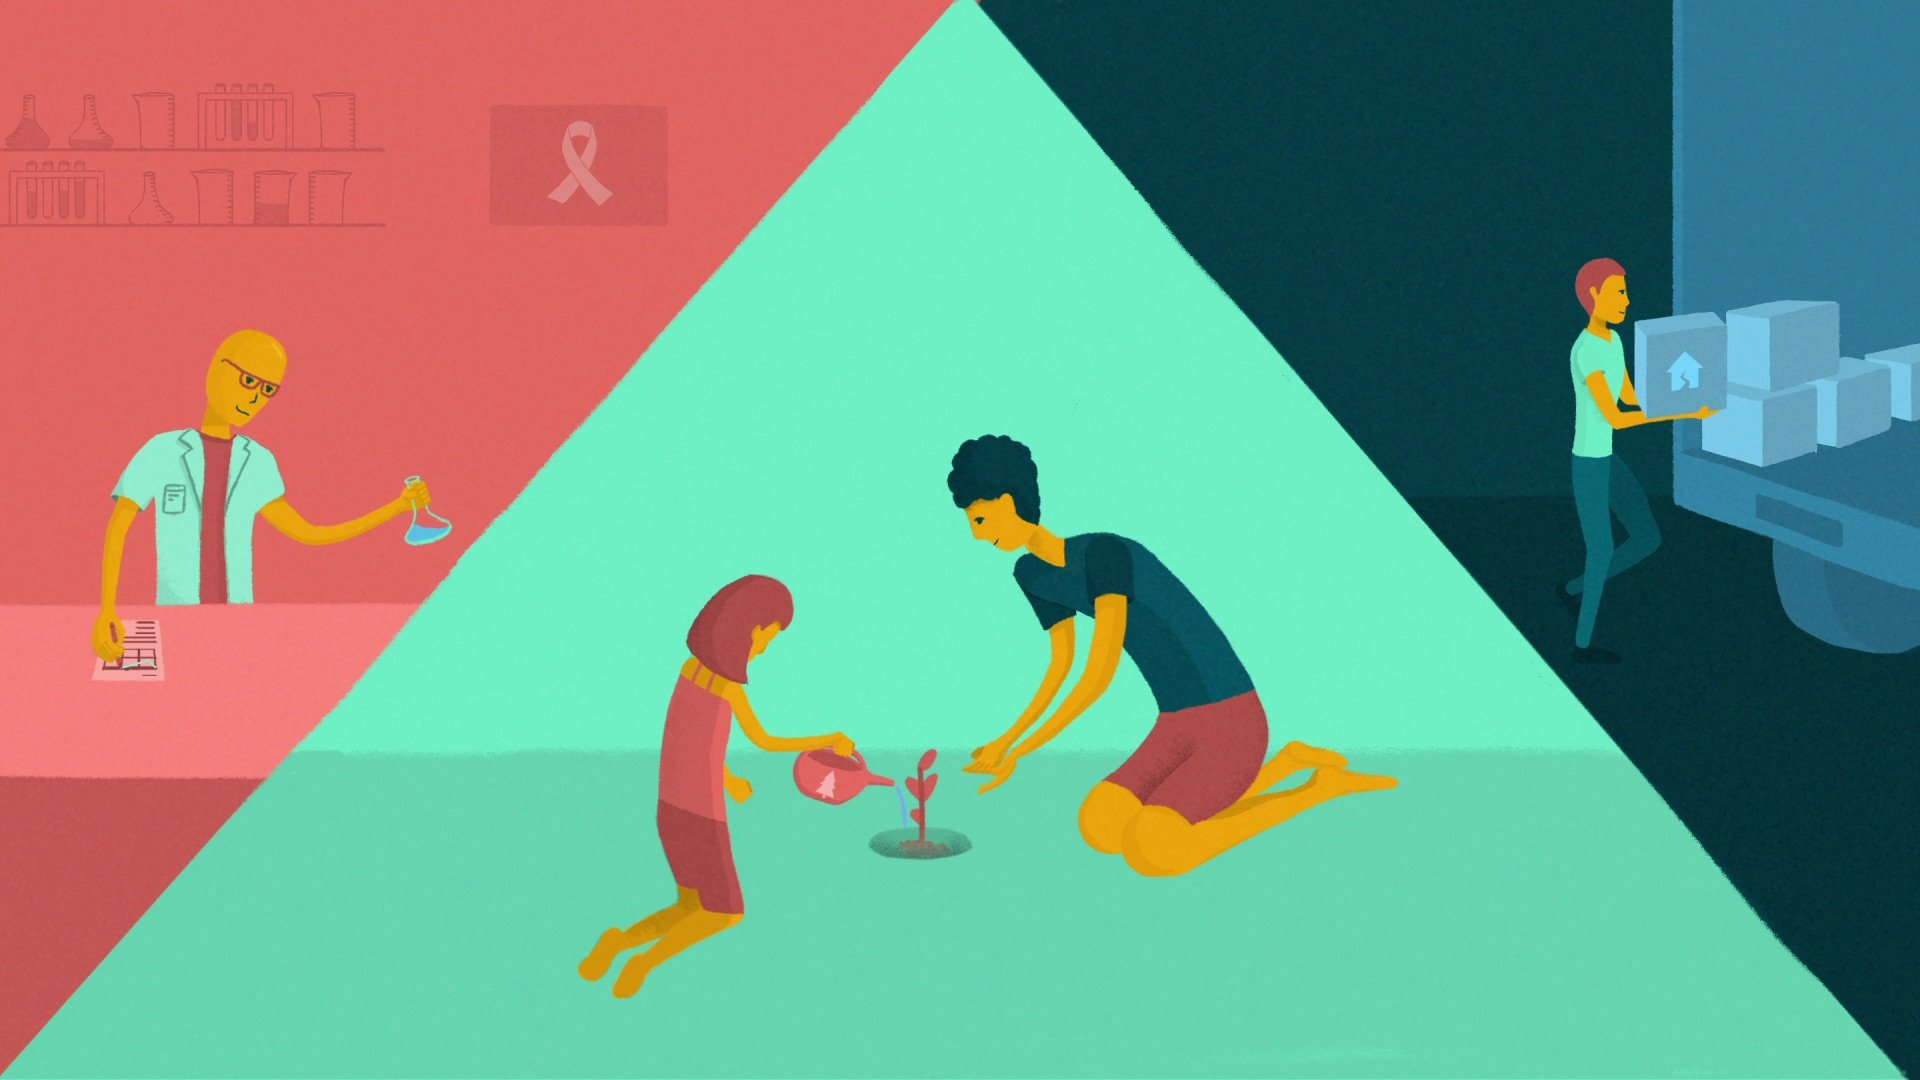 illustration for an explainer video animation for the Incidee app. It shows a family planting a tree